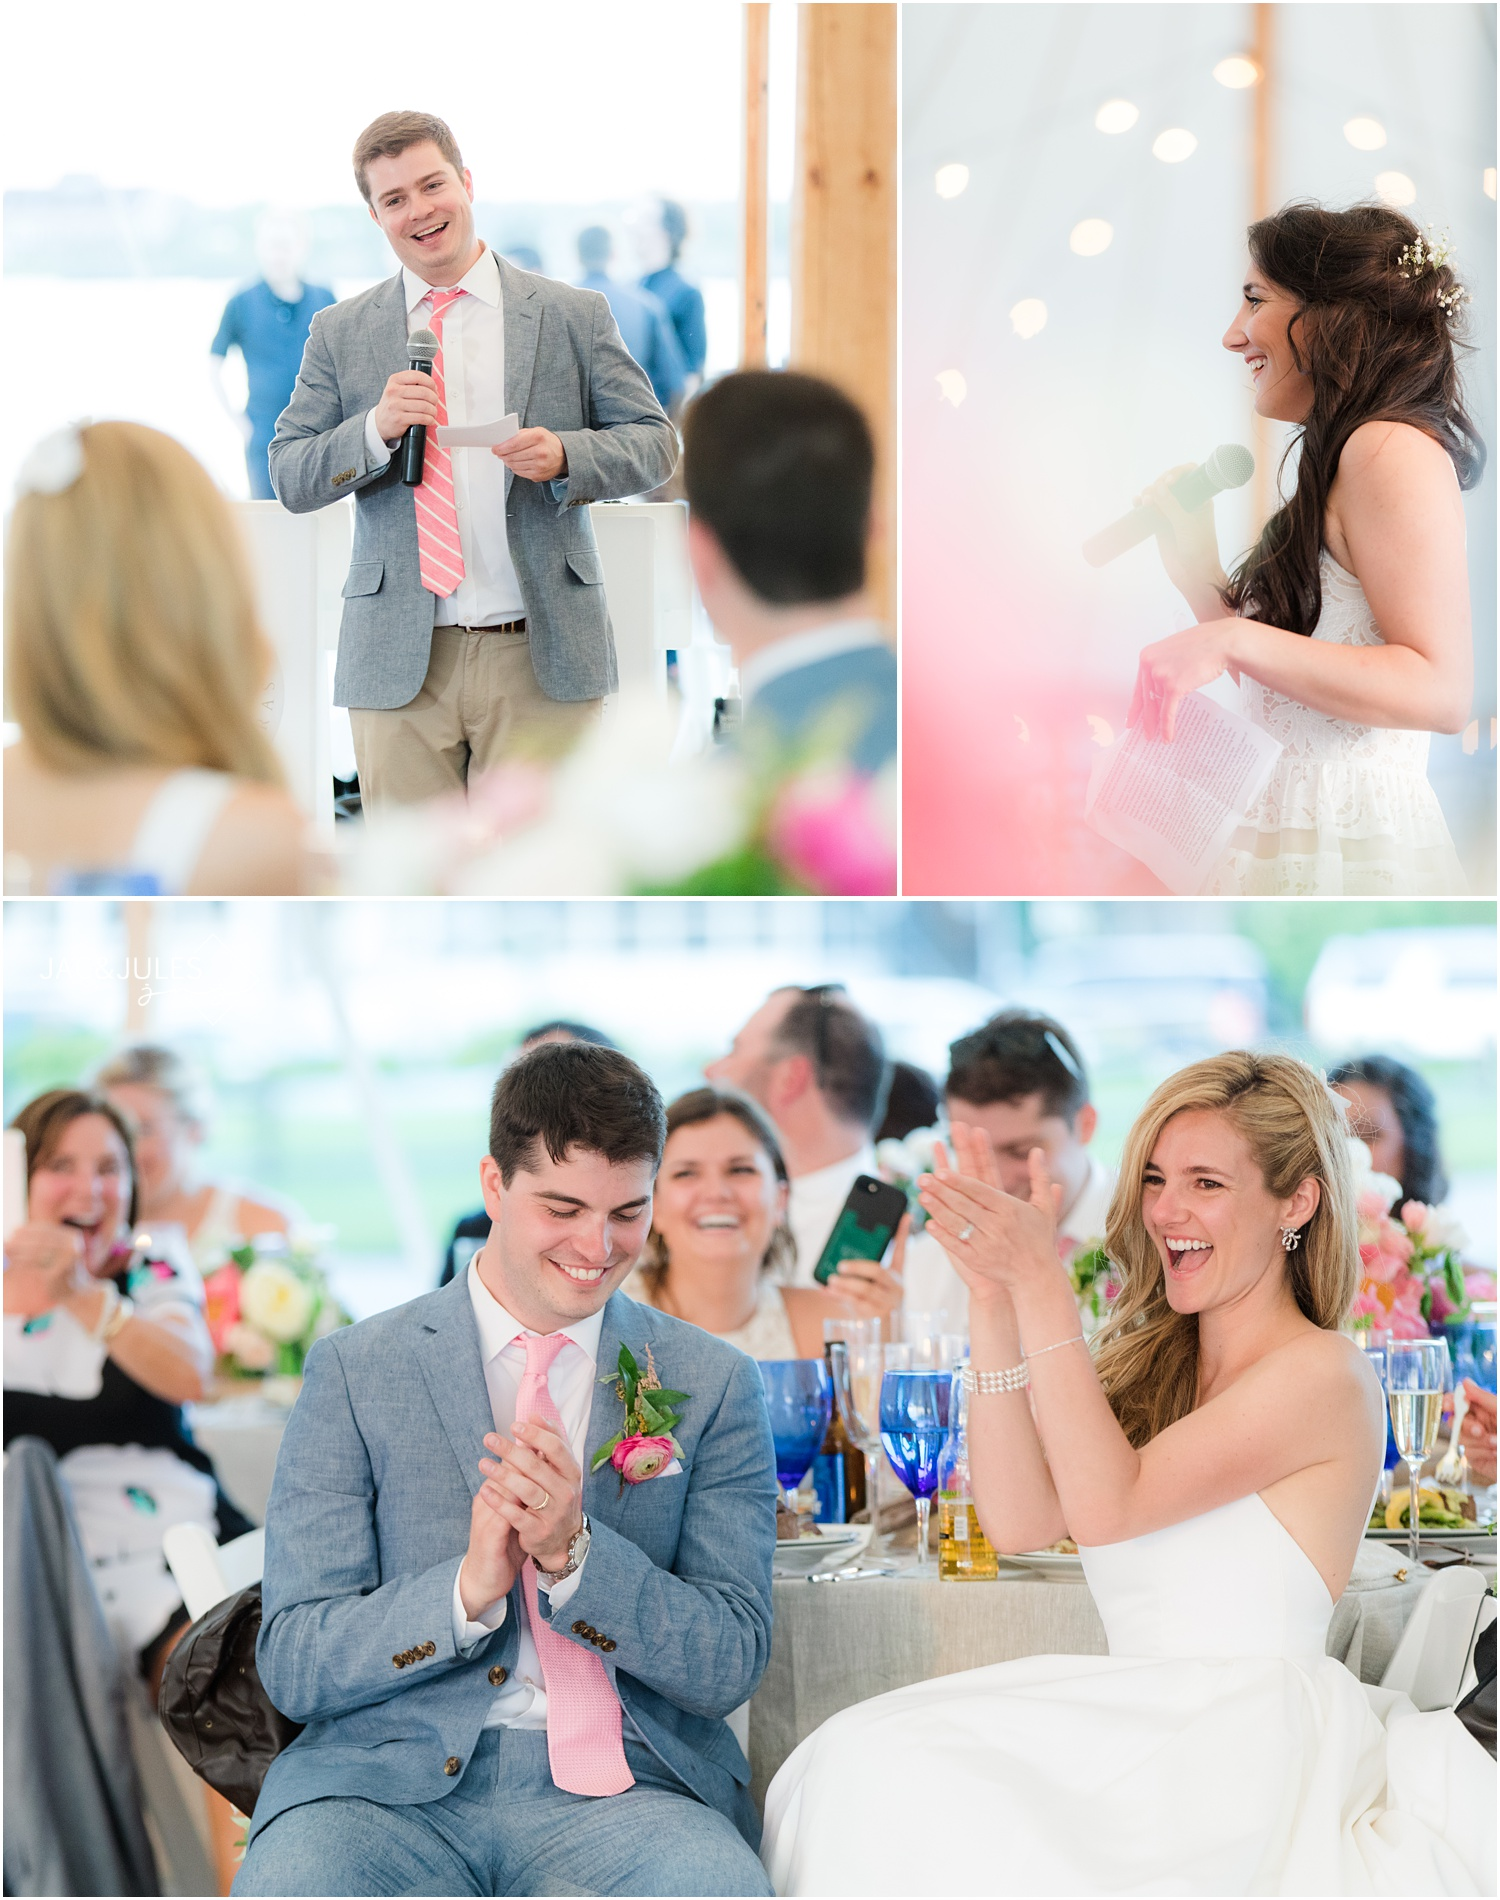 Bride and groom share laughs during speeches at their Mantoloking, NJ wedding